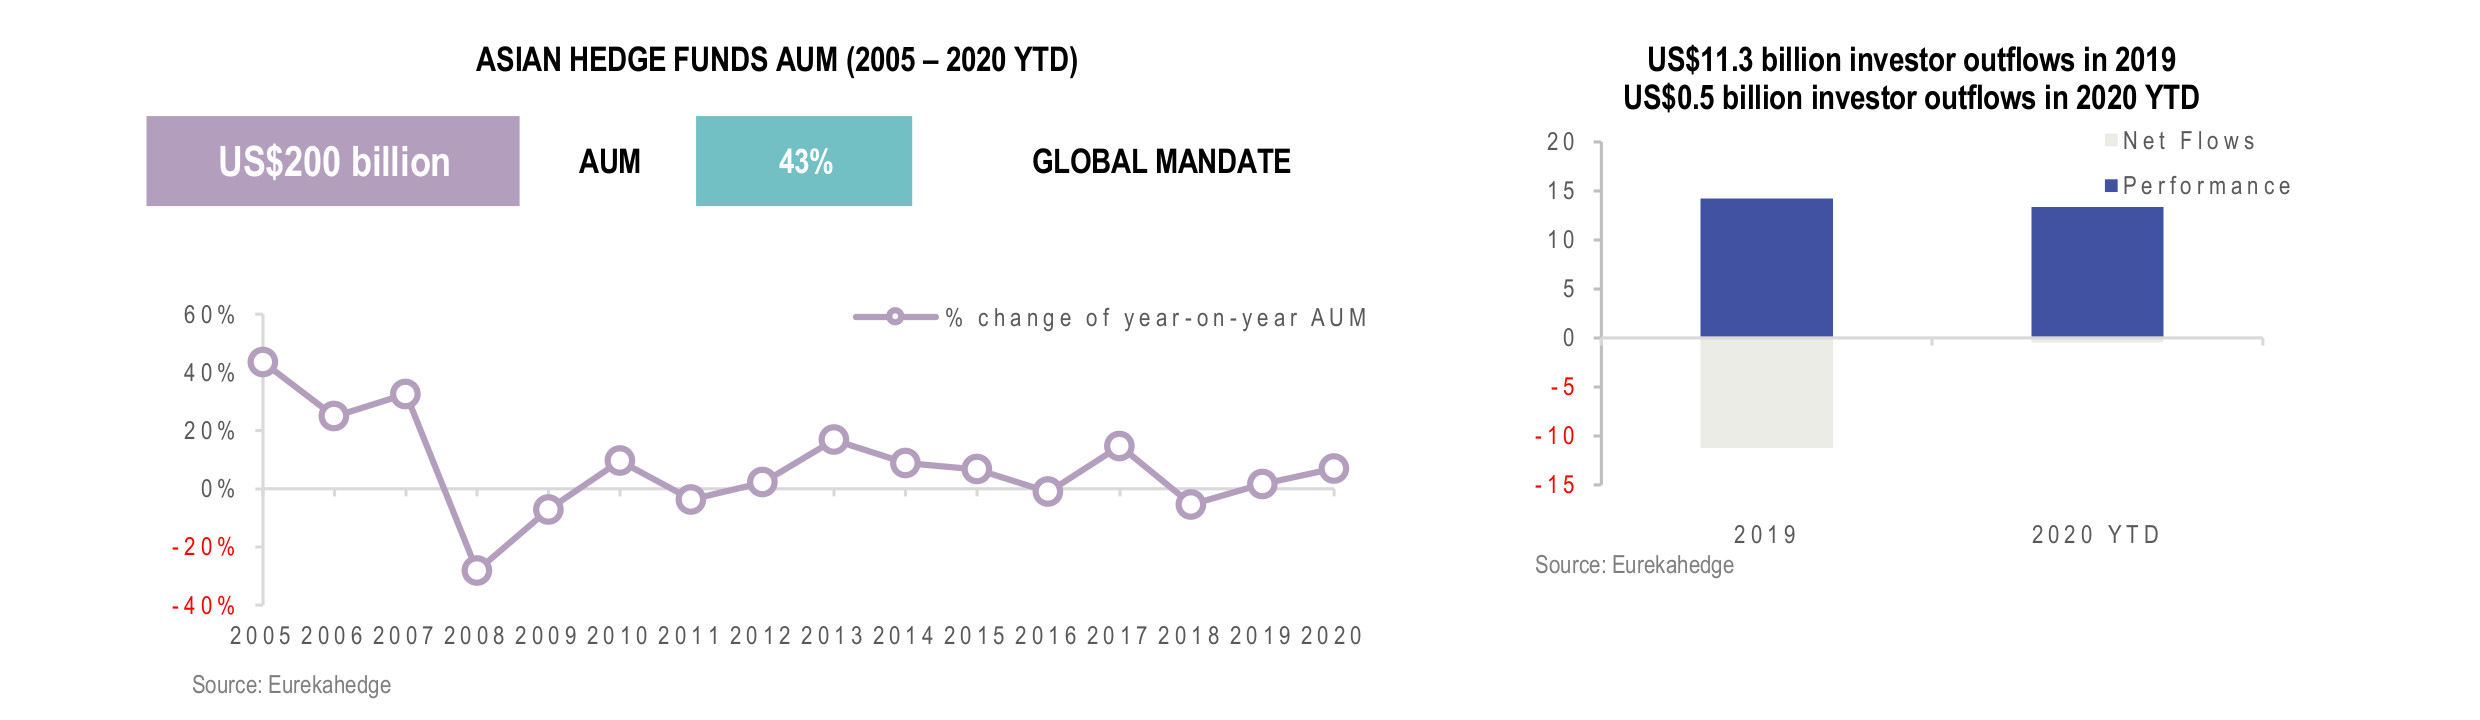 Asian Hedge Funds Infographic February 2021 - AUM